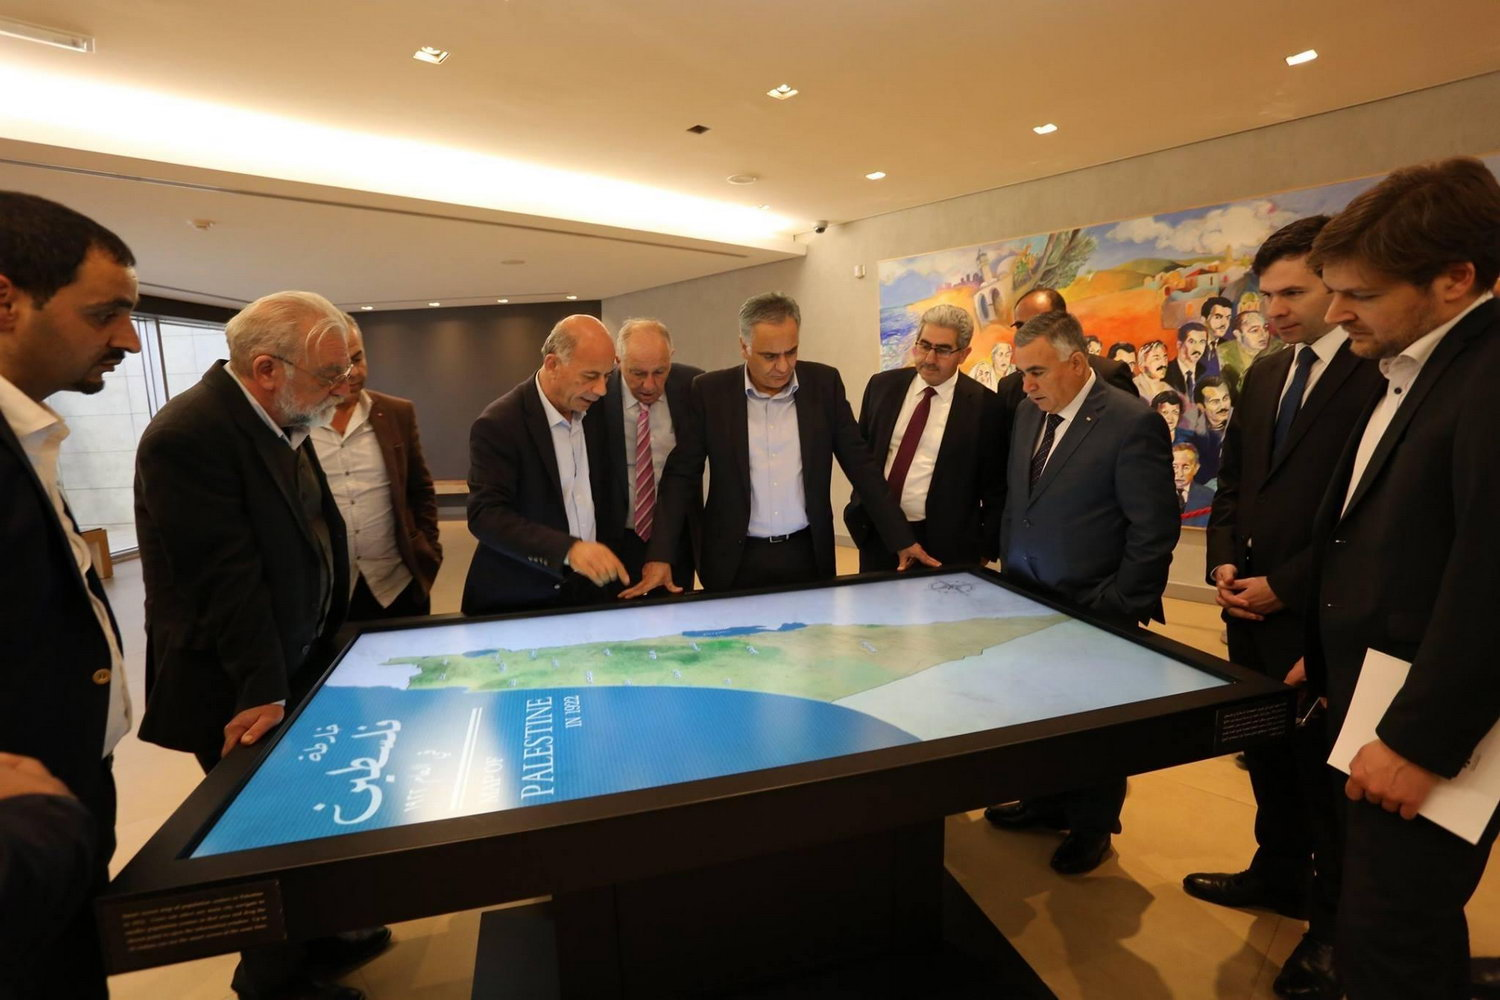 Minister of the Interior and Local Government of Greece Mr. Panos Skourletis Visits the Museum